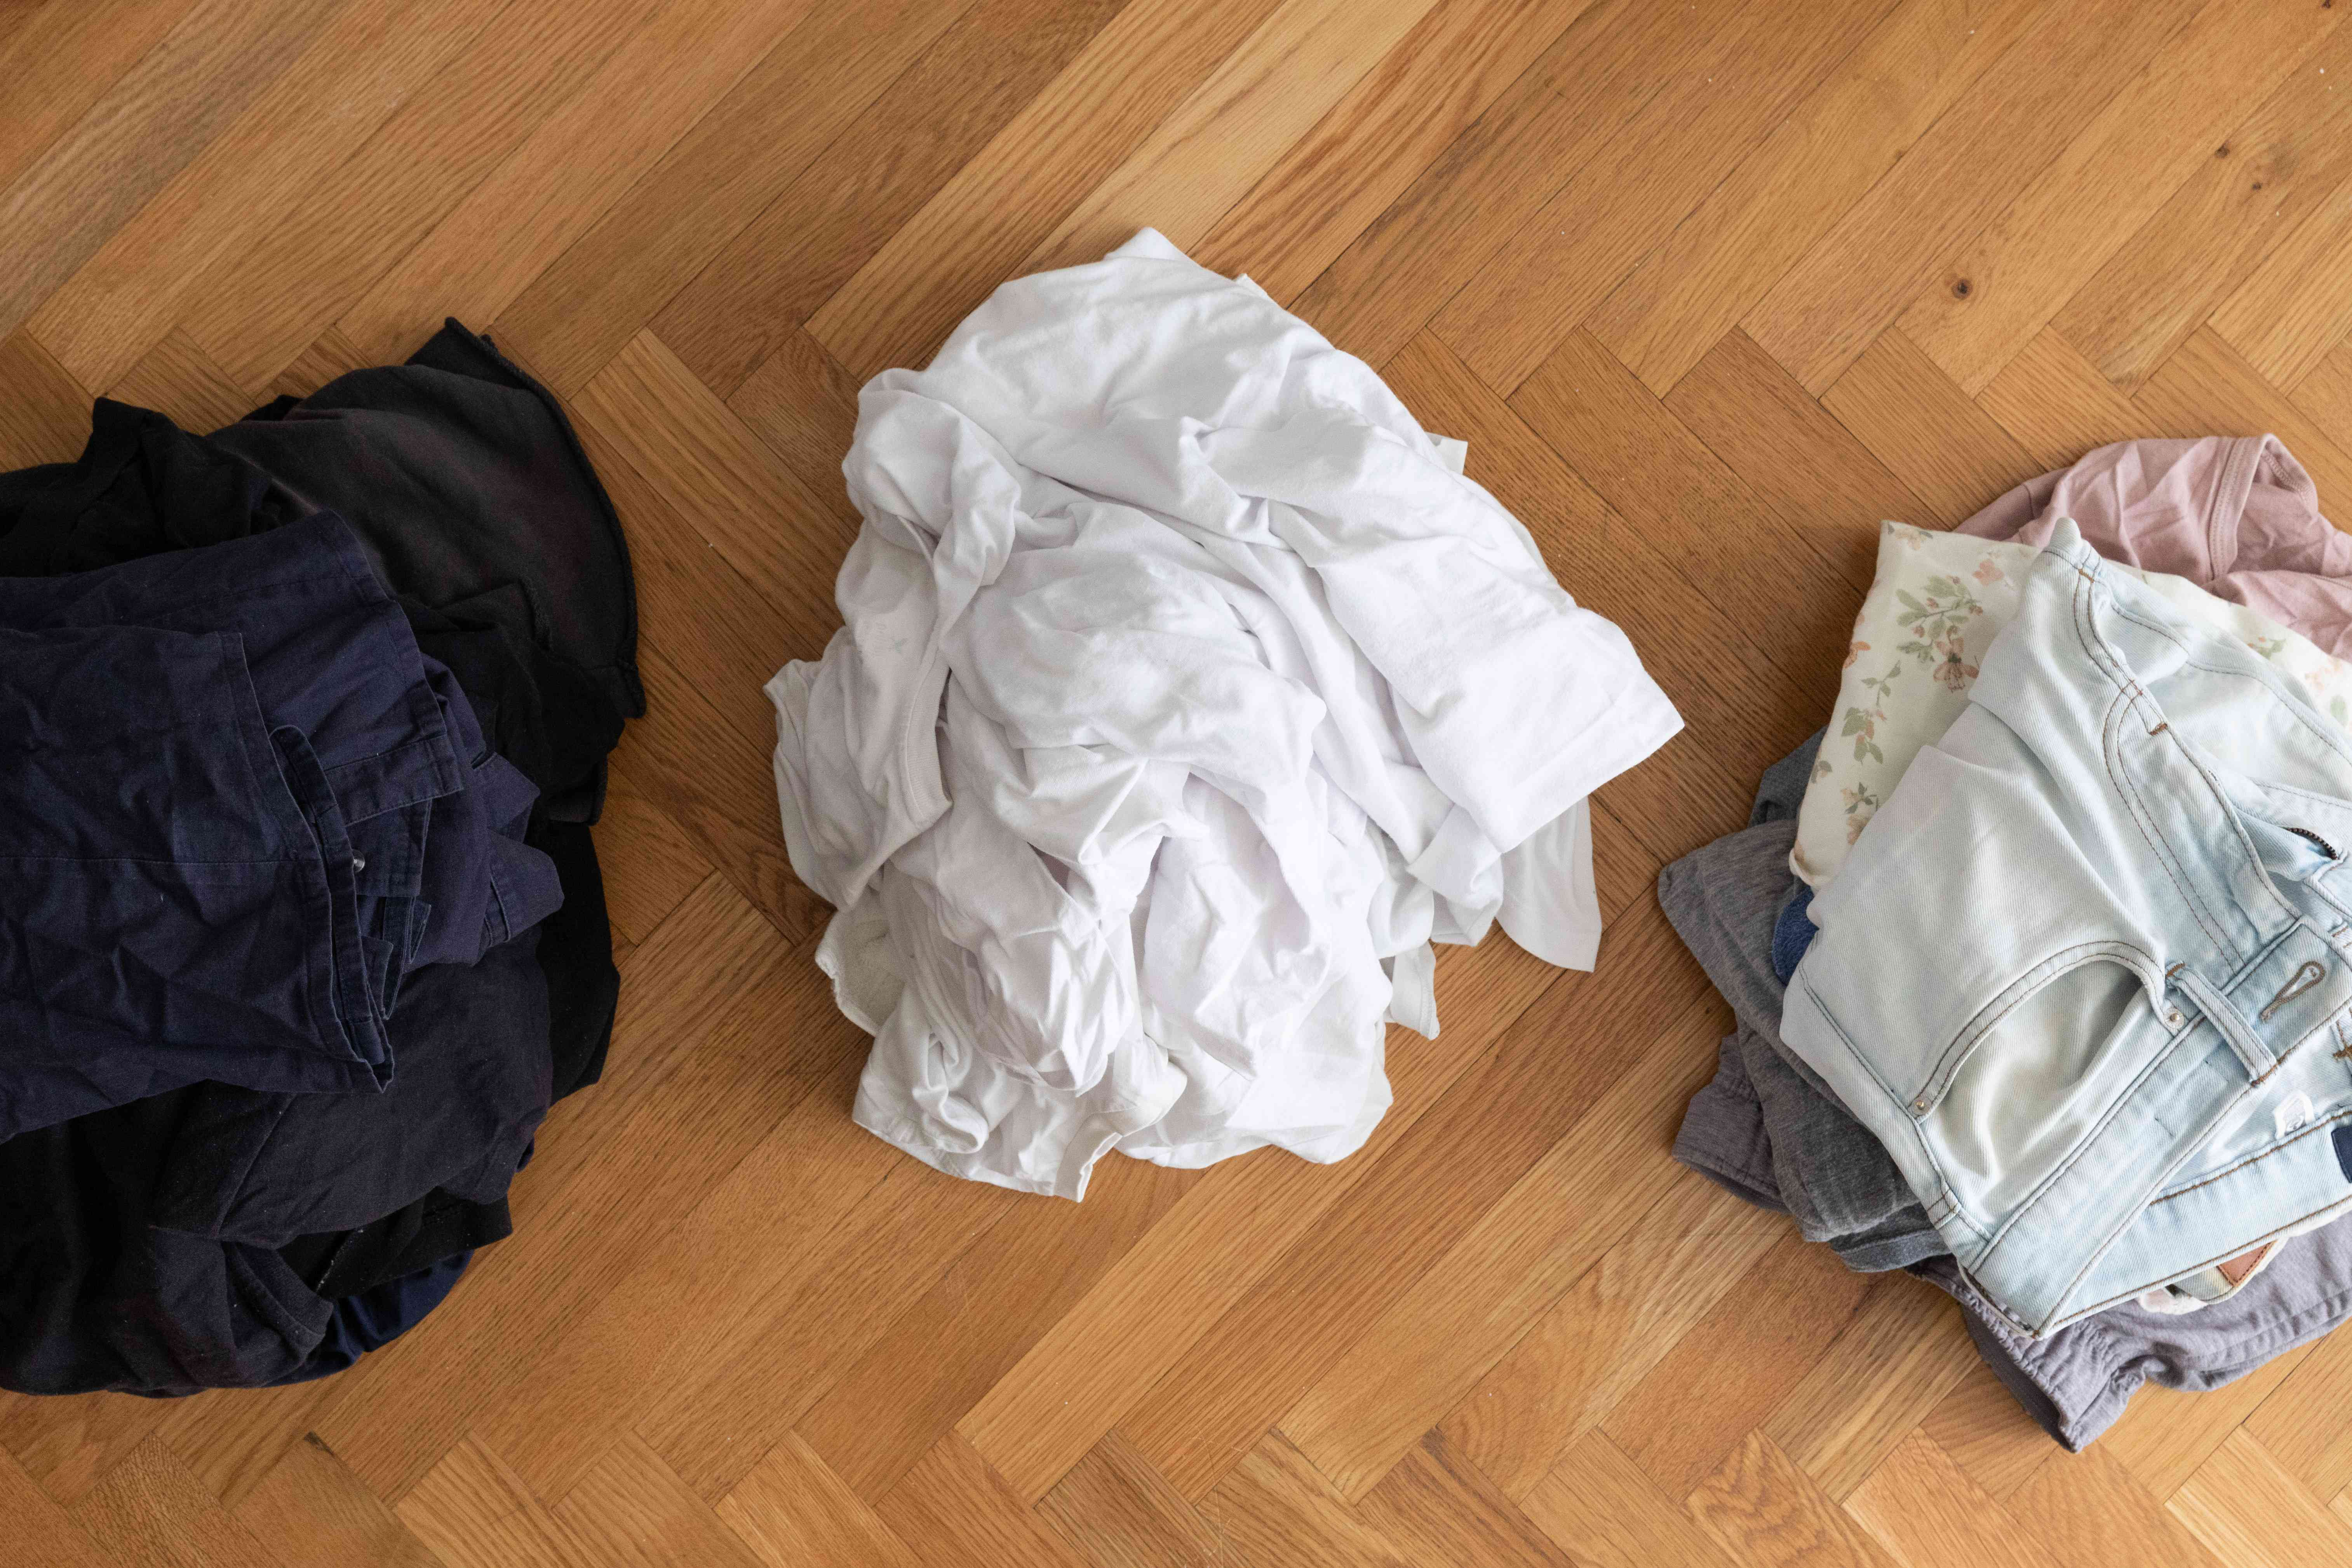 Dirty laundry clothes separated by color